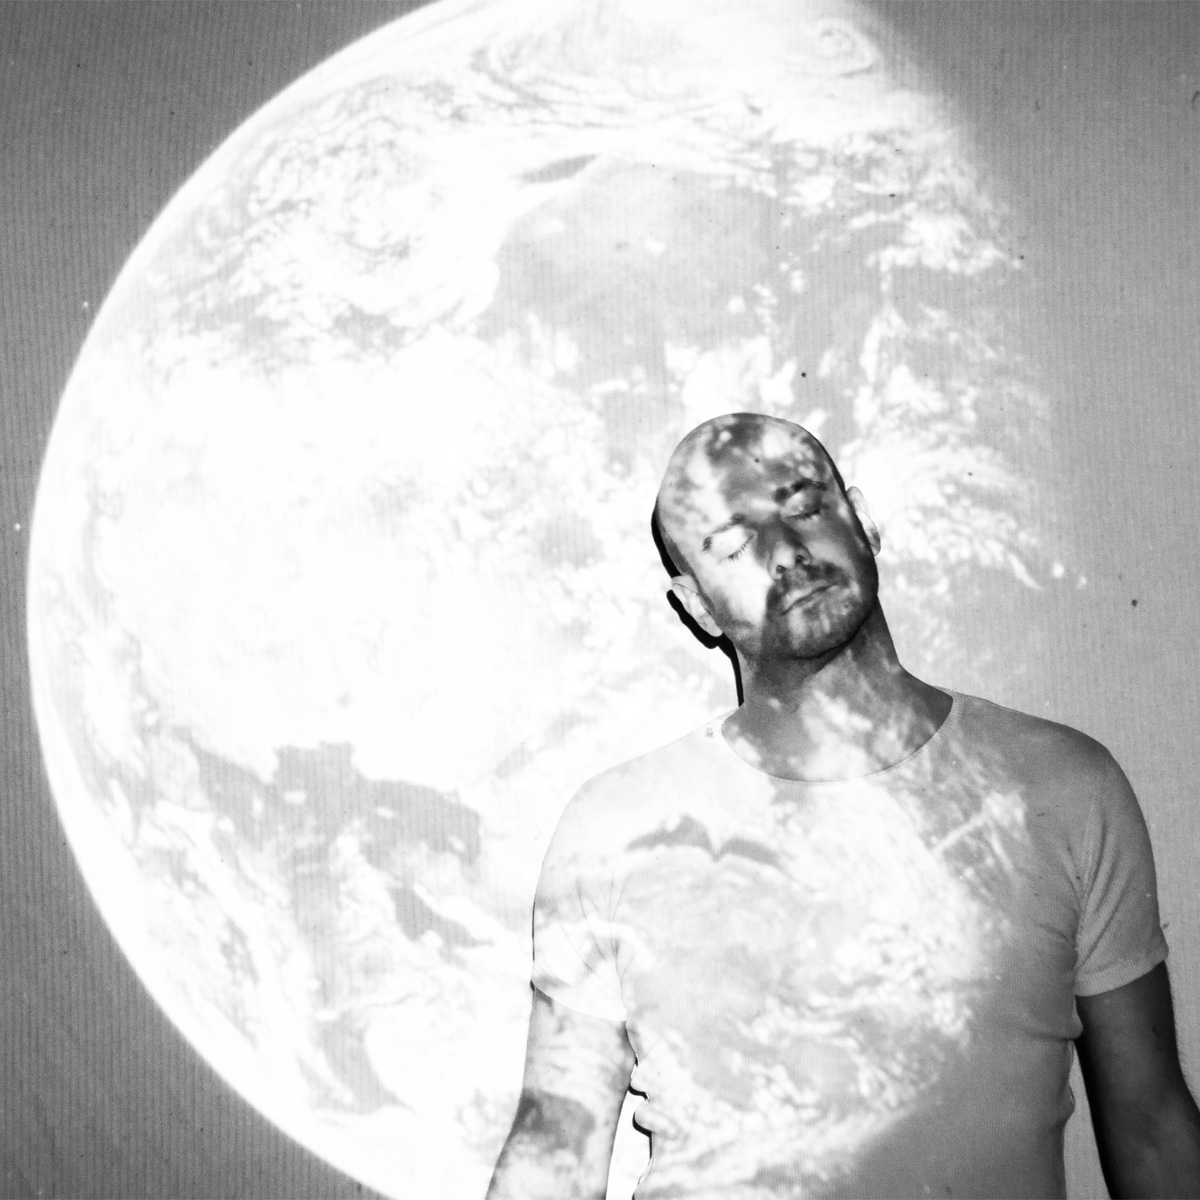 nr 1-Michael-on the moon-balck and white artist photo